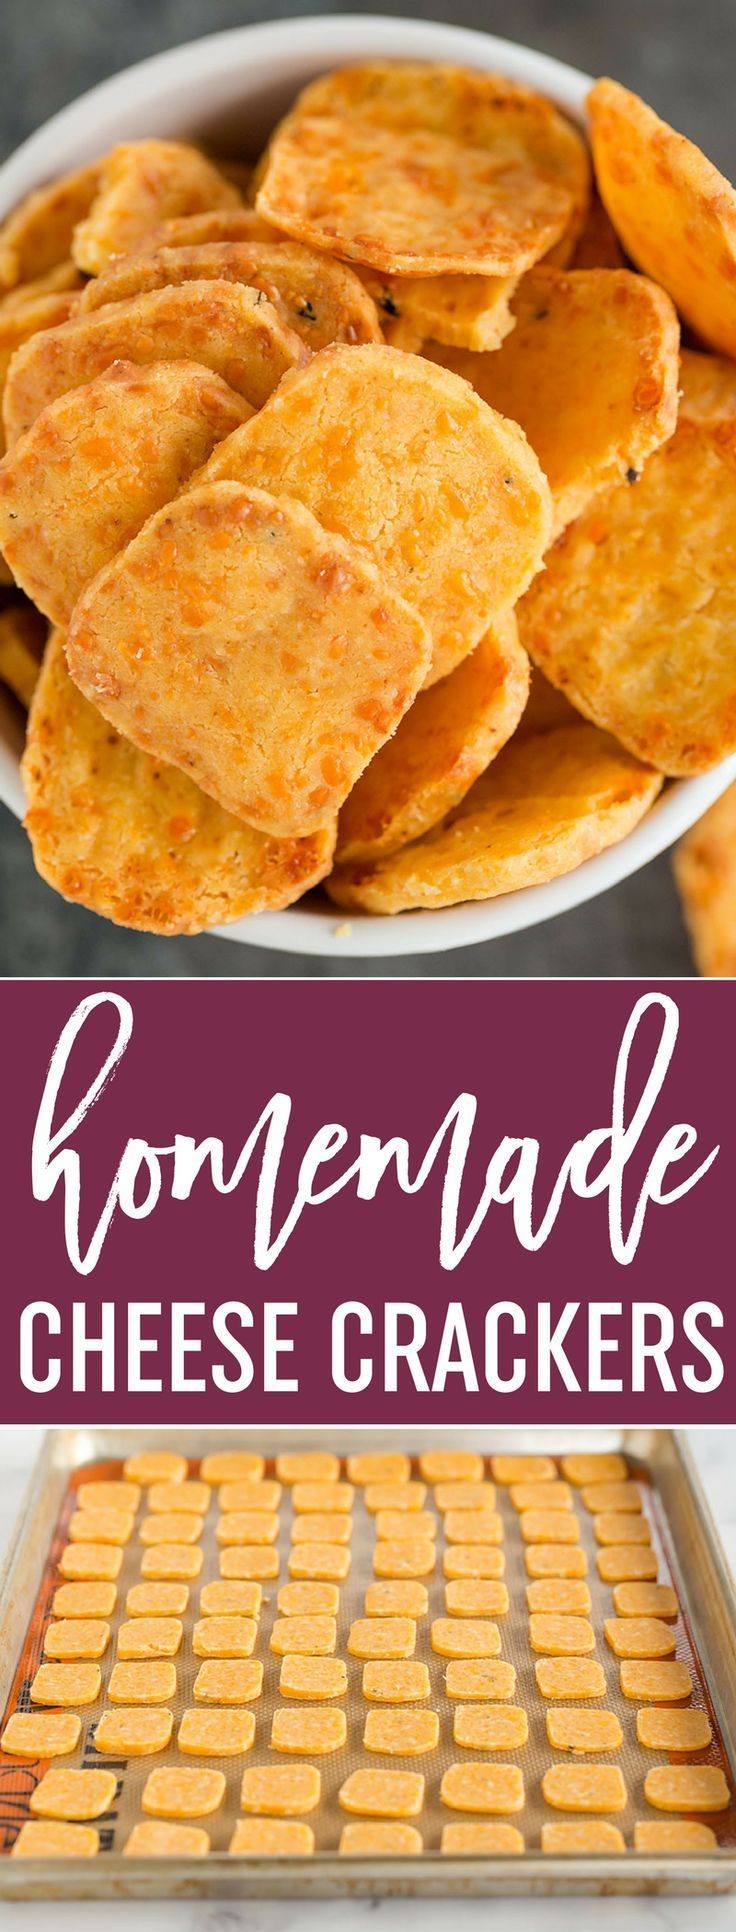 Spicy Southern Cheese Crackers - Easy homemade cheese crackers that are super buttery and have a spicy kick! via /browneyedbaker/